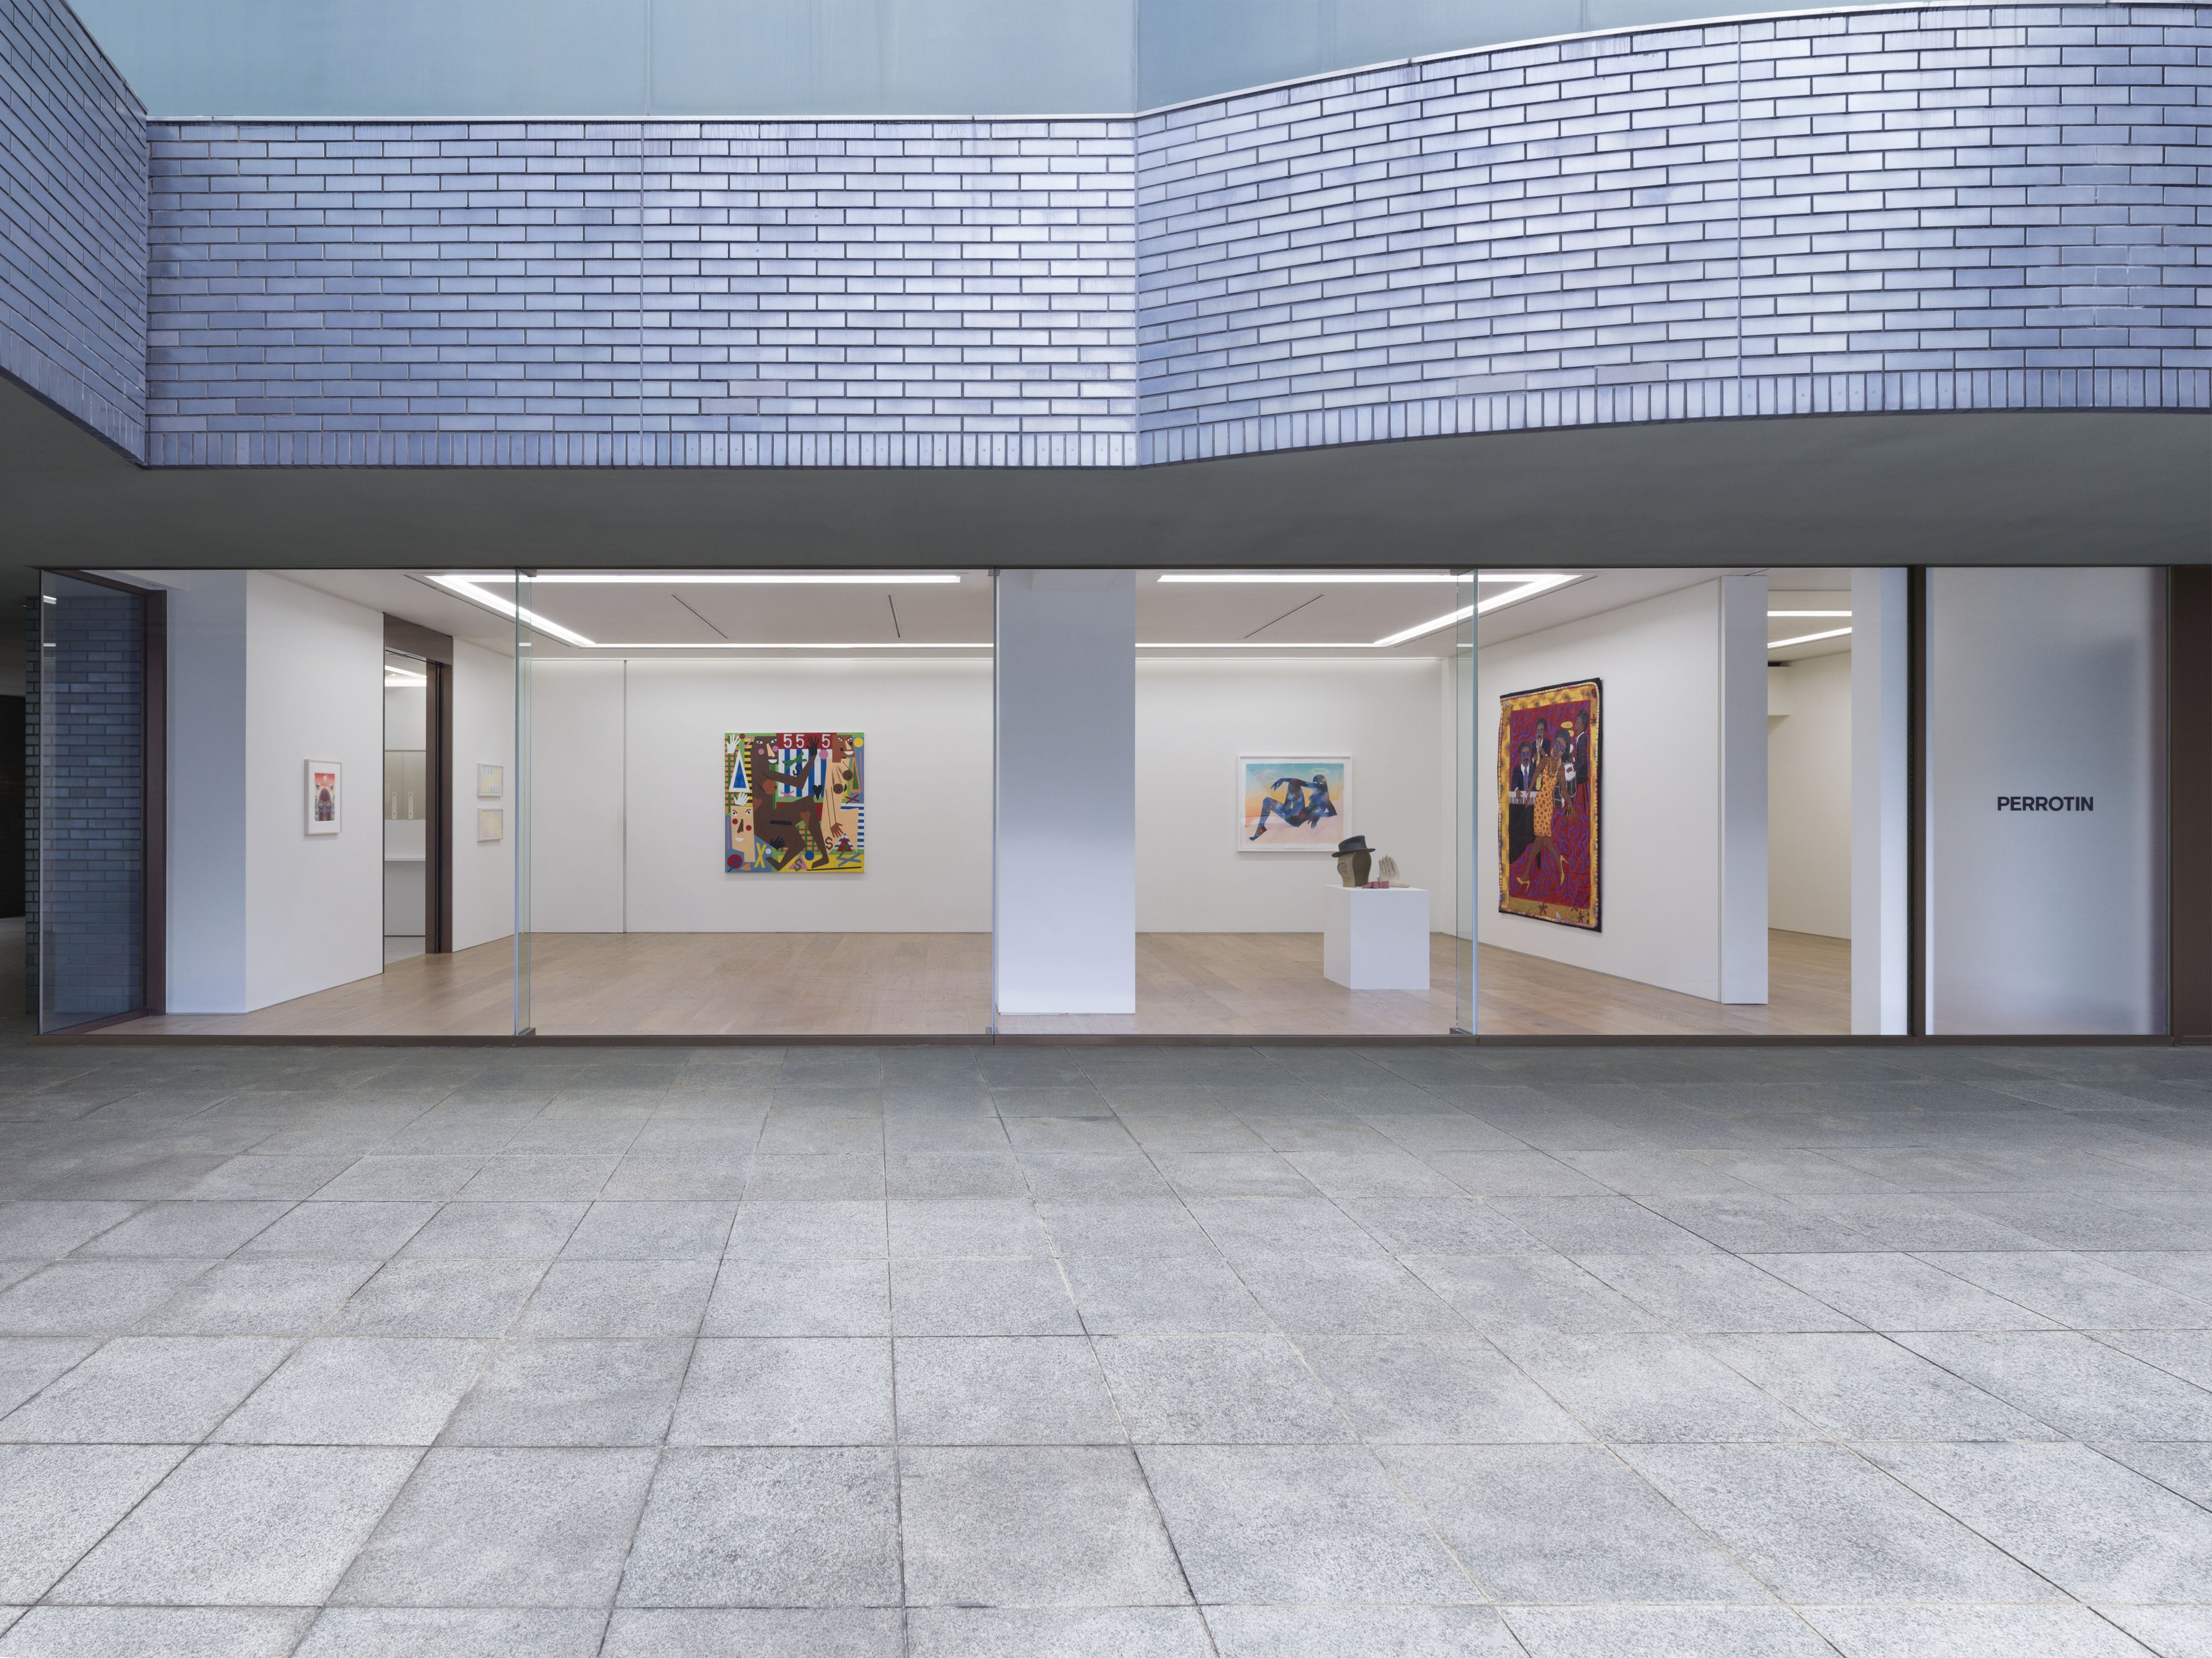 View of the exhibition, Bitter Nest, Perrotin, Tokyo, Japan